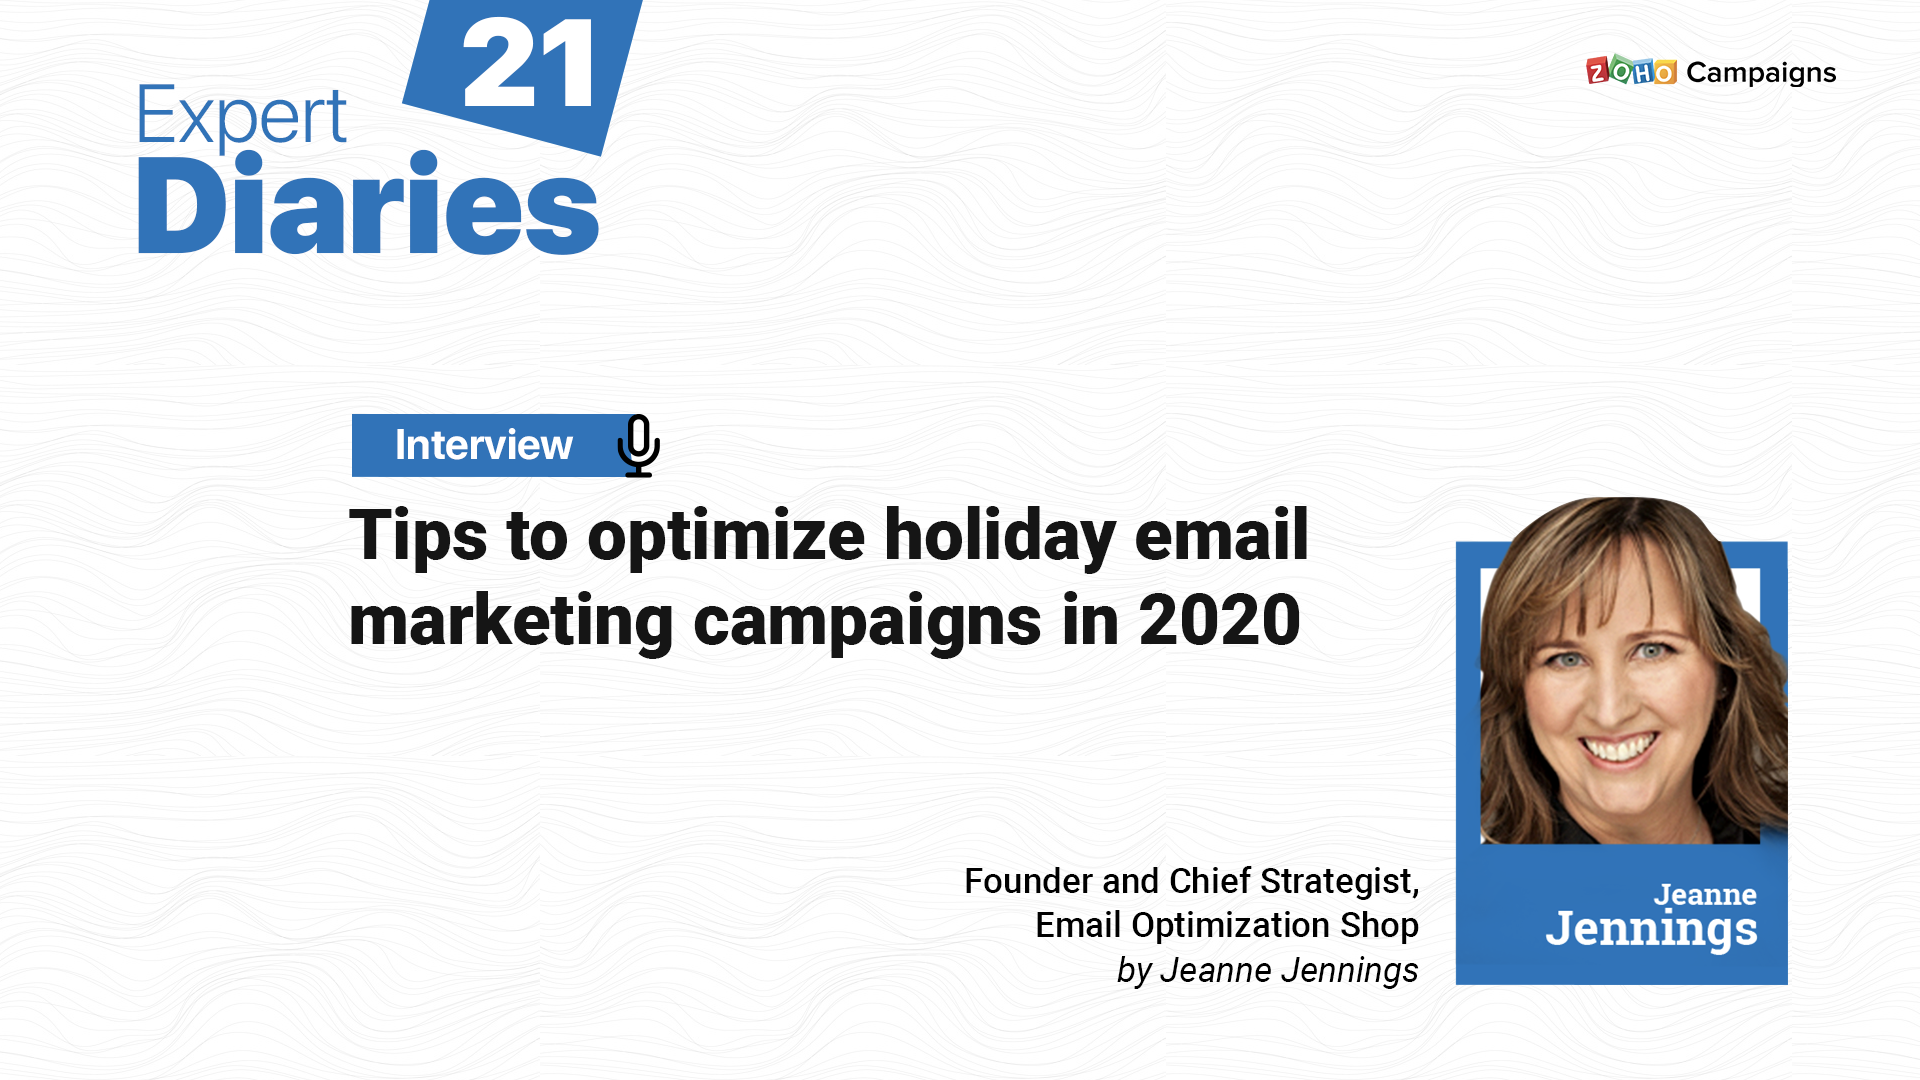 Tips to optimize holiday email marketing campaigns in 2020